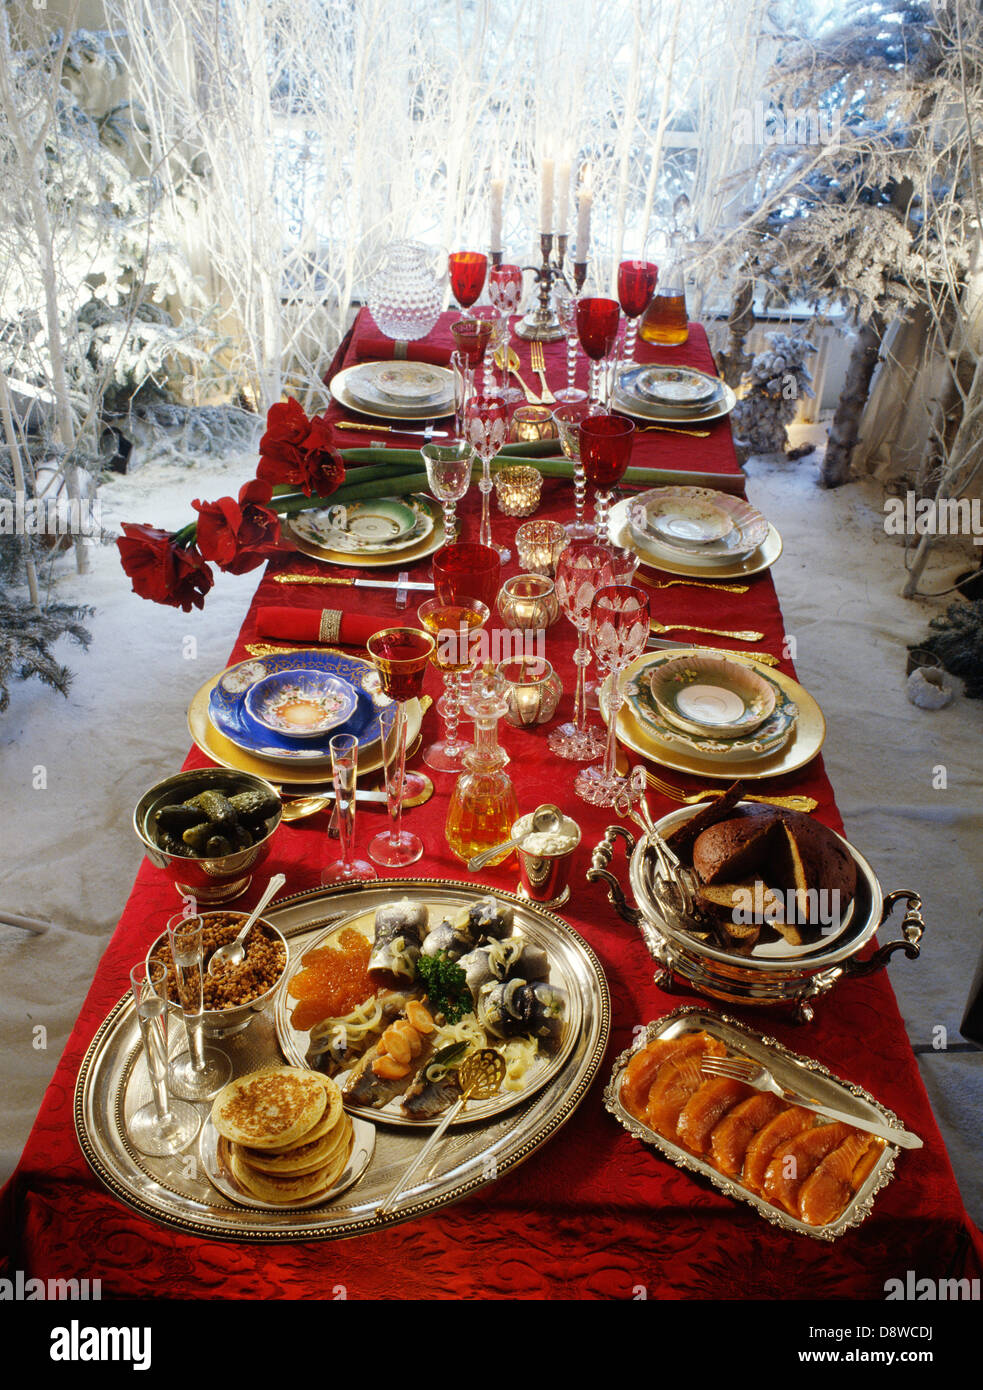 Russian Lunch Christmas Table Stock Photo, Royalty Free. Mexican Christmas Decorations To Make. Christmas Decorations Large Star. Best Buy On Christmas Ornaments. Christmas Decorations Kitchen. Decorate Christmas Tree Budget. Outdoor Christmas Decorations Black Friday. Decorated Christmas Tree Singapore. Christmas Tree Lights Battery Operated